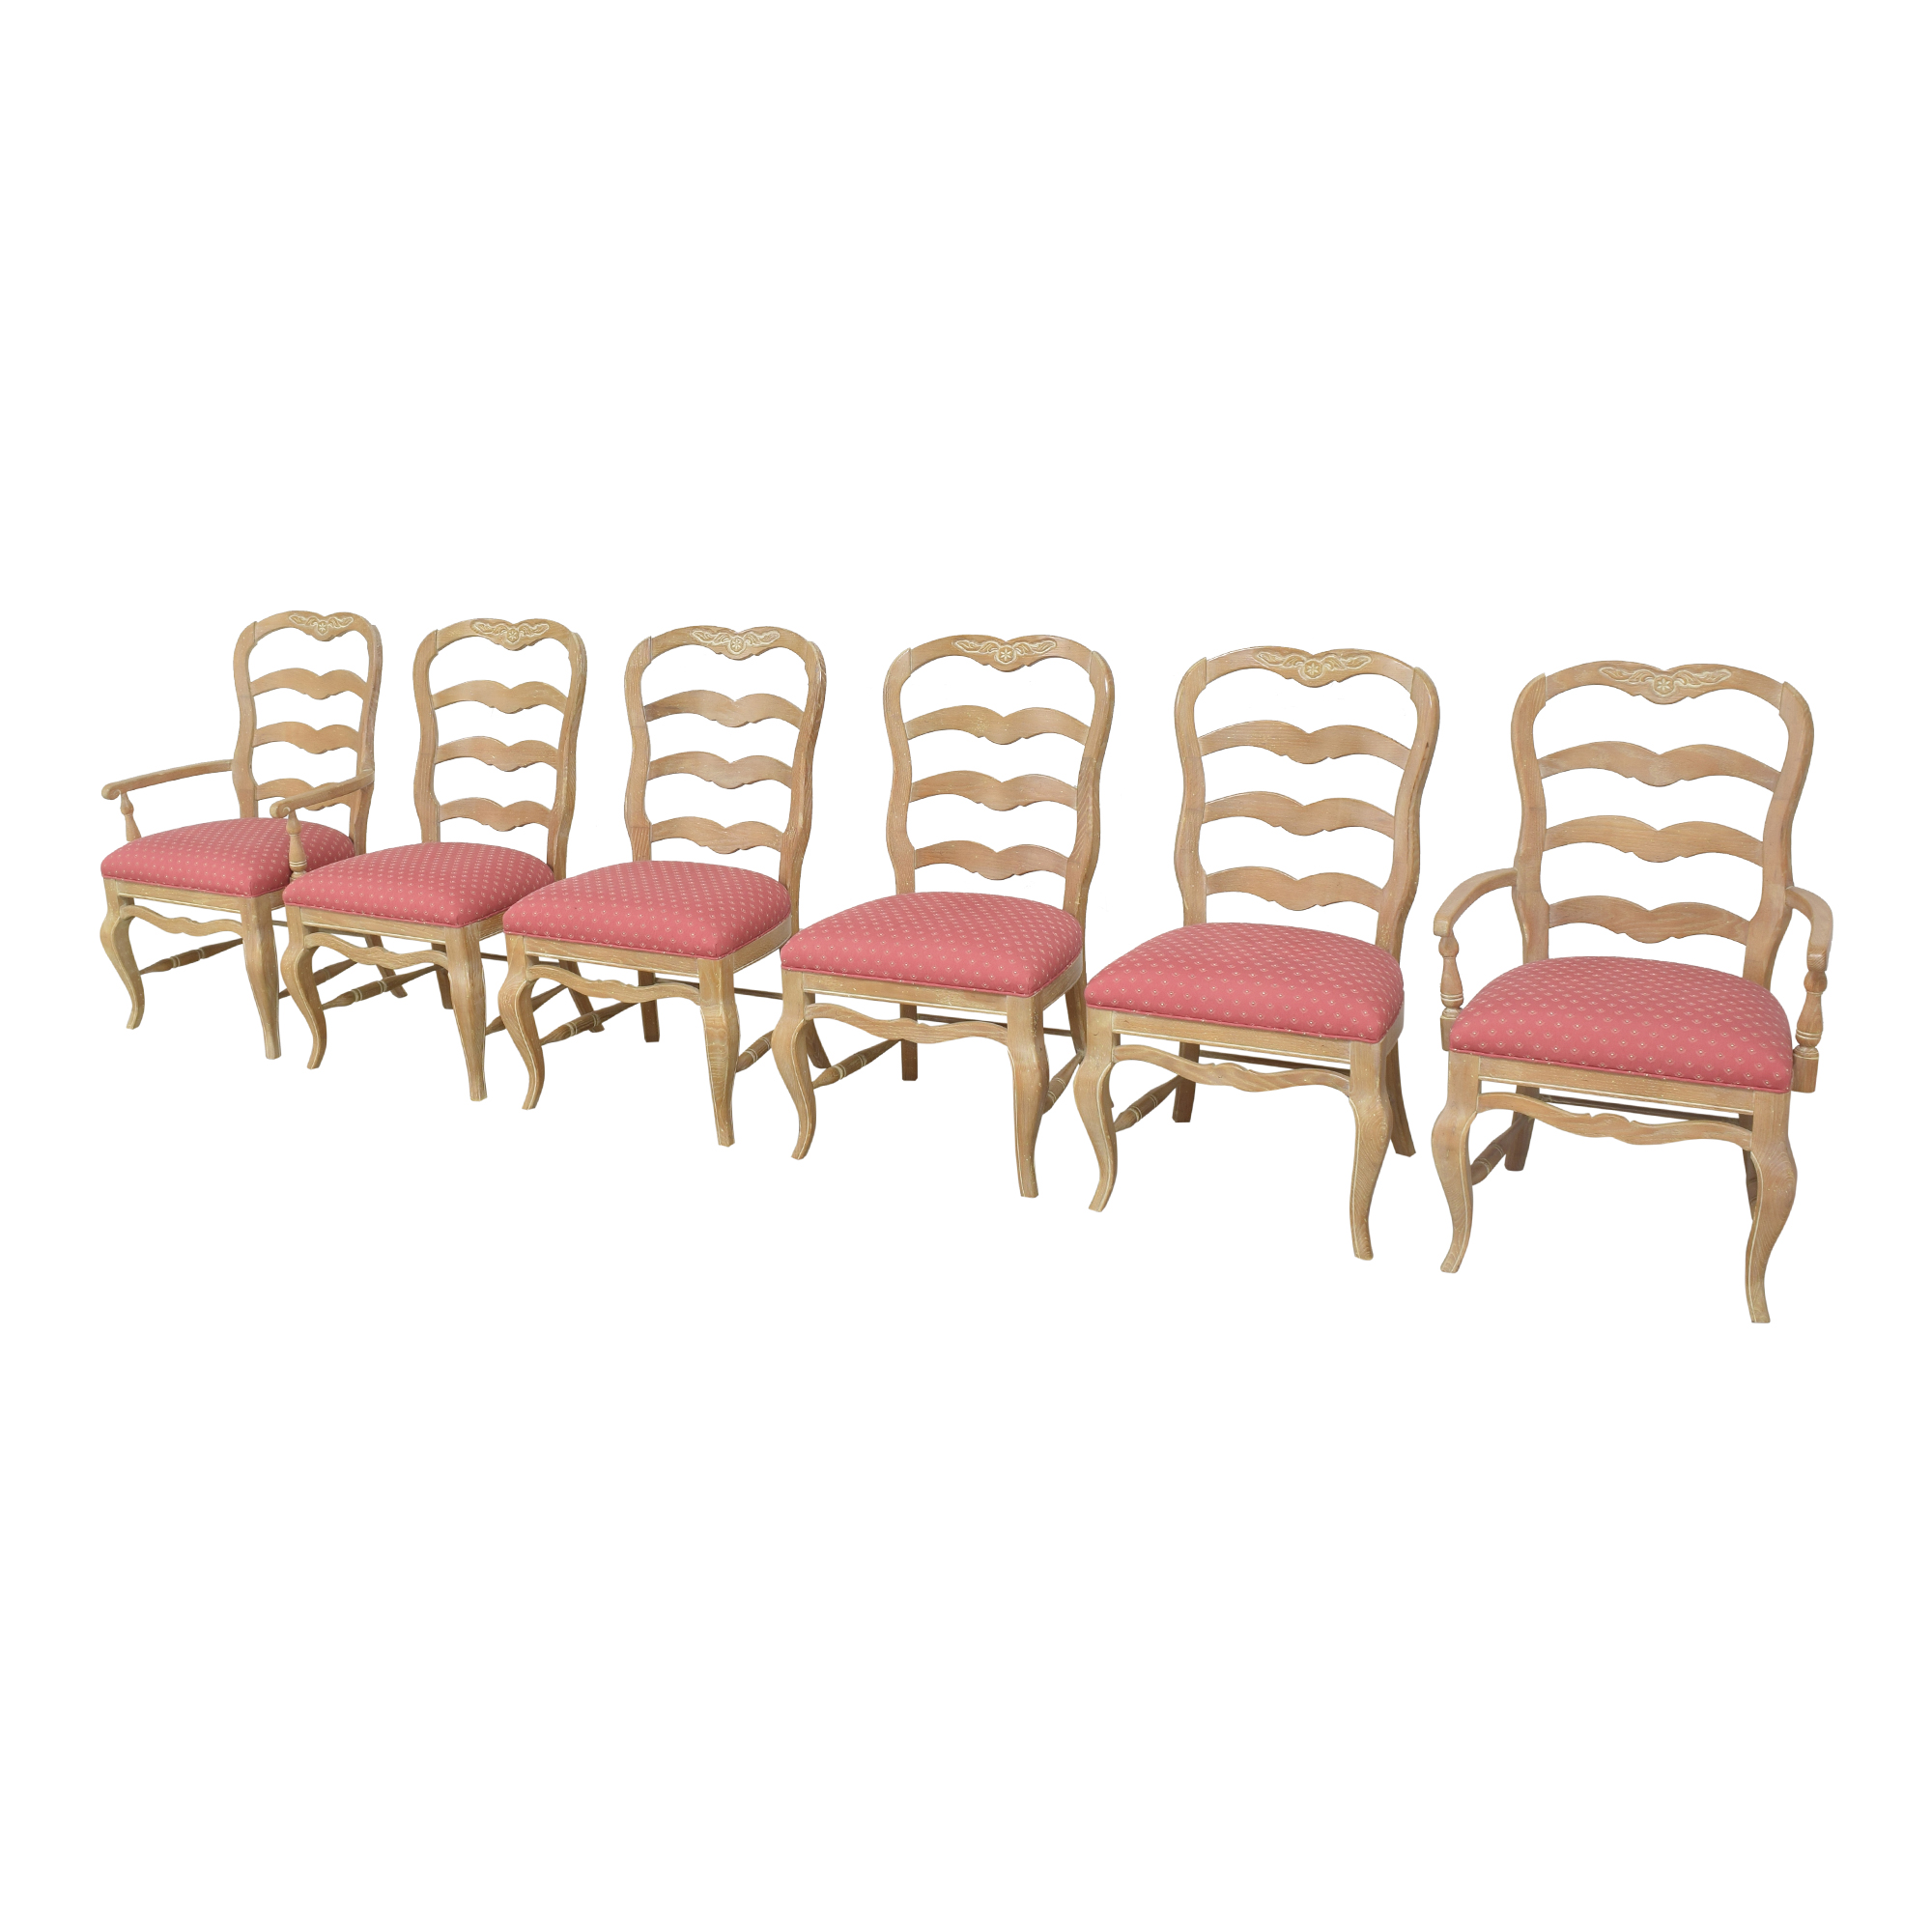 Pennsylvania House Pennsylvania House Country French Ladder Back Dining Chairs used